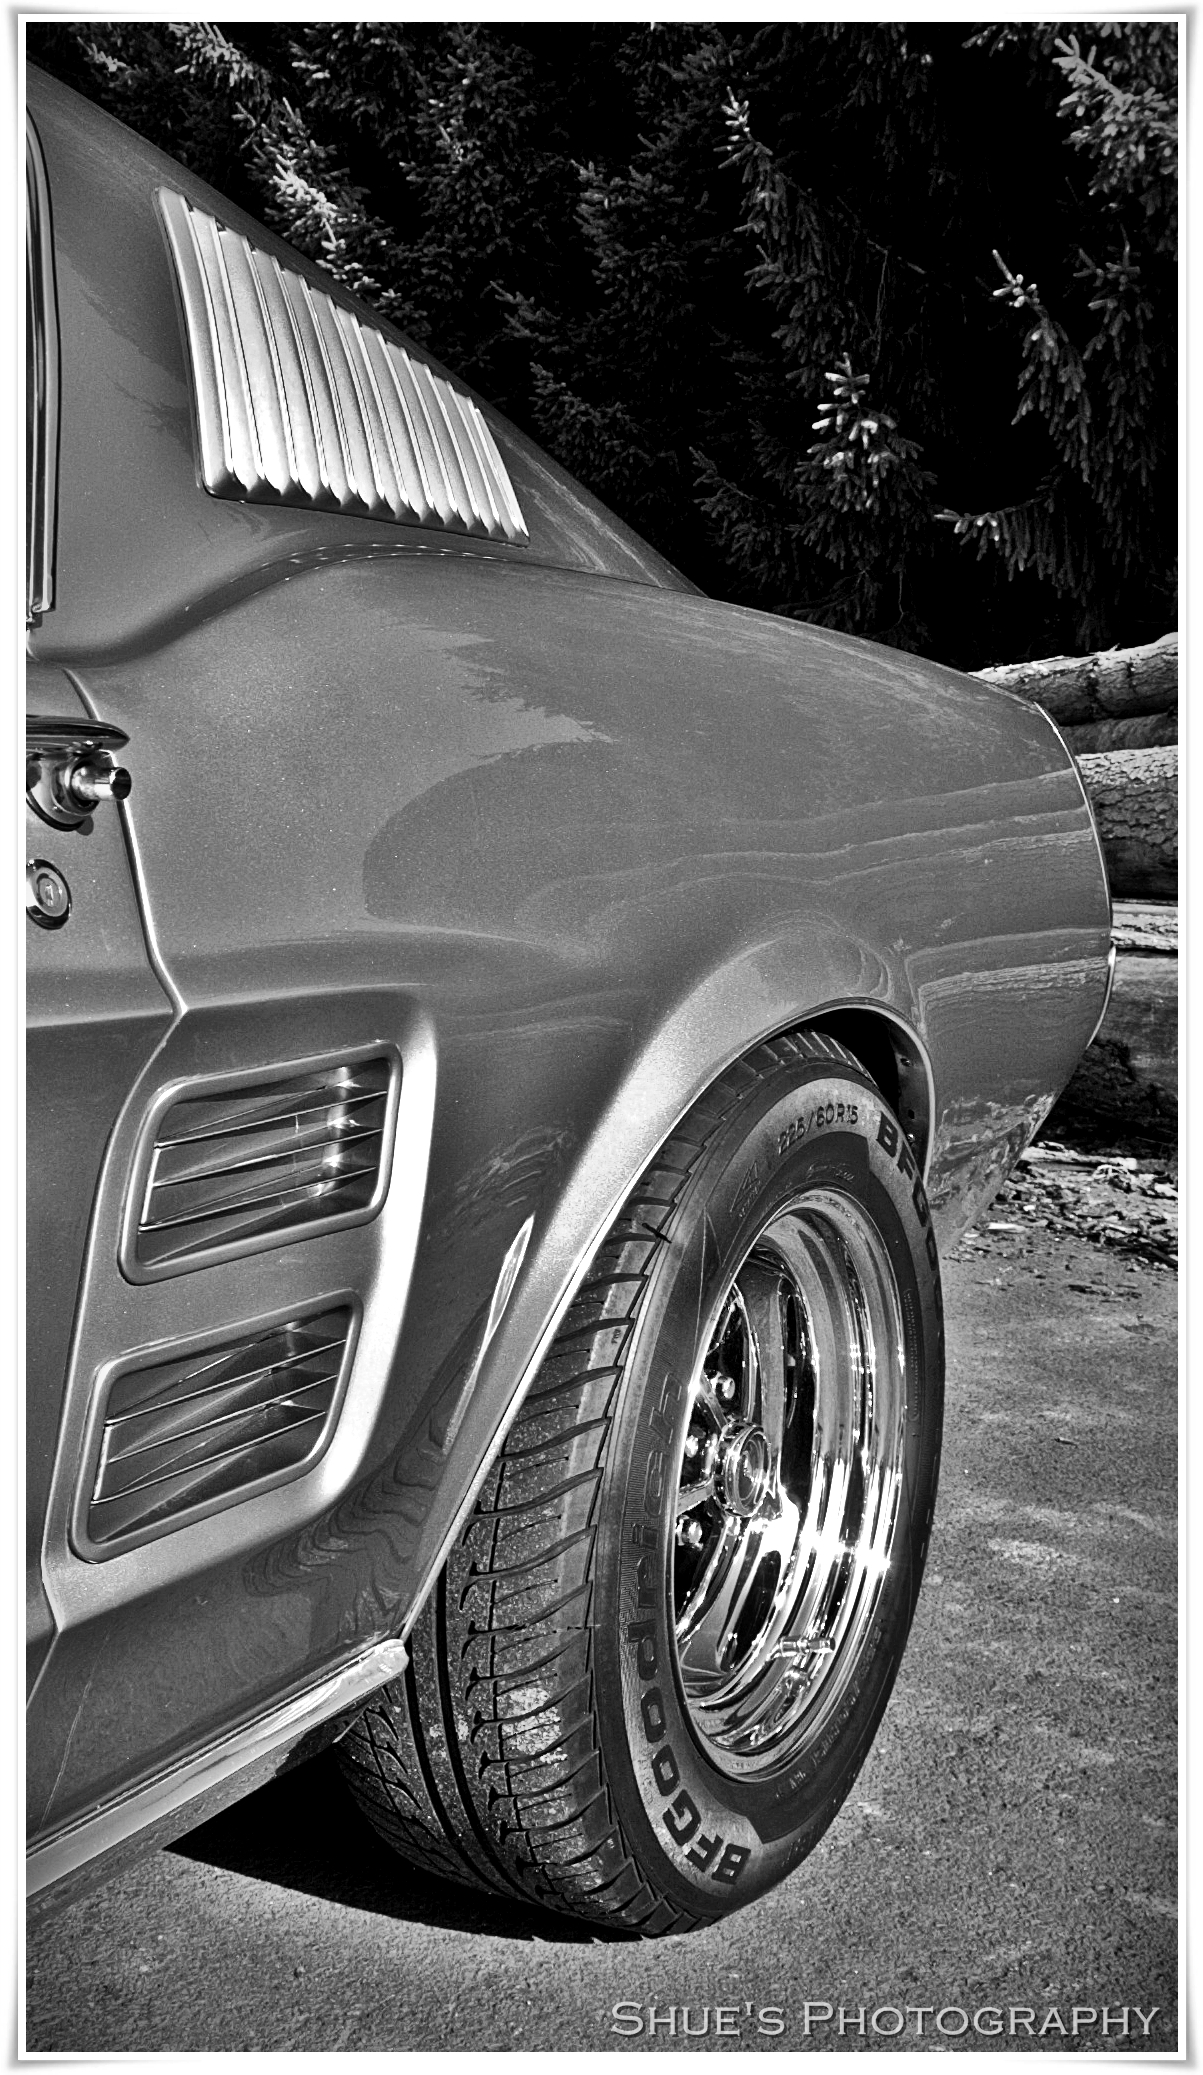 1967 mustang fastback project craigslist fastback Faery 2 · freeform